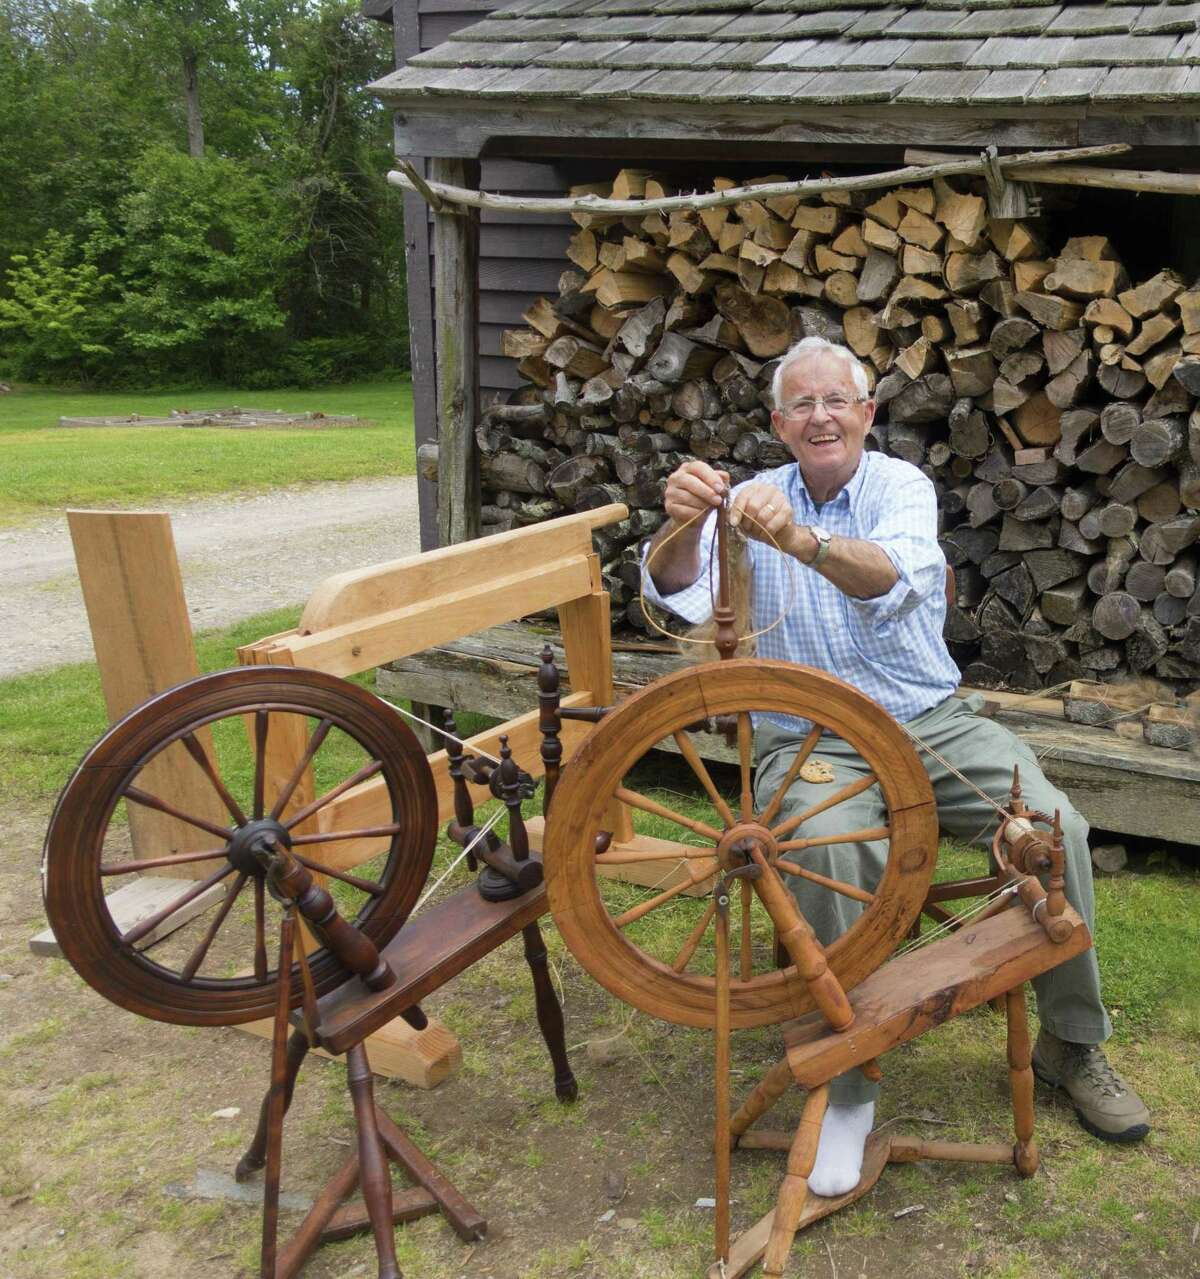 Warner Lord, former Madison Town Historian, returns to Connecticut to process flax in a public program at Bushnell Farm in Old Saybrook on Saturday, May 18. Follow the Fibers to Bushnell Farm is free with on-site parking at this 17th century site with seven buildings. The event is rain or shine.